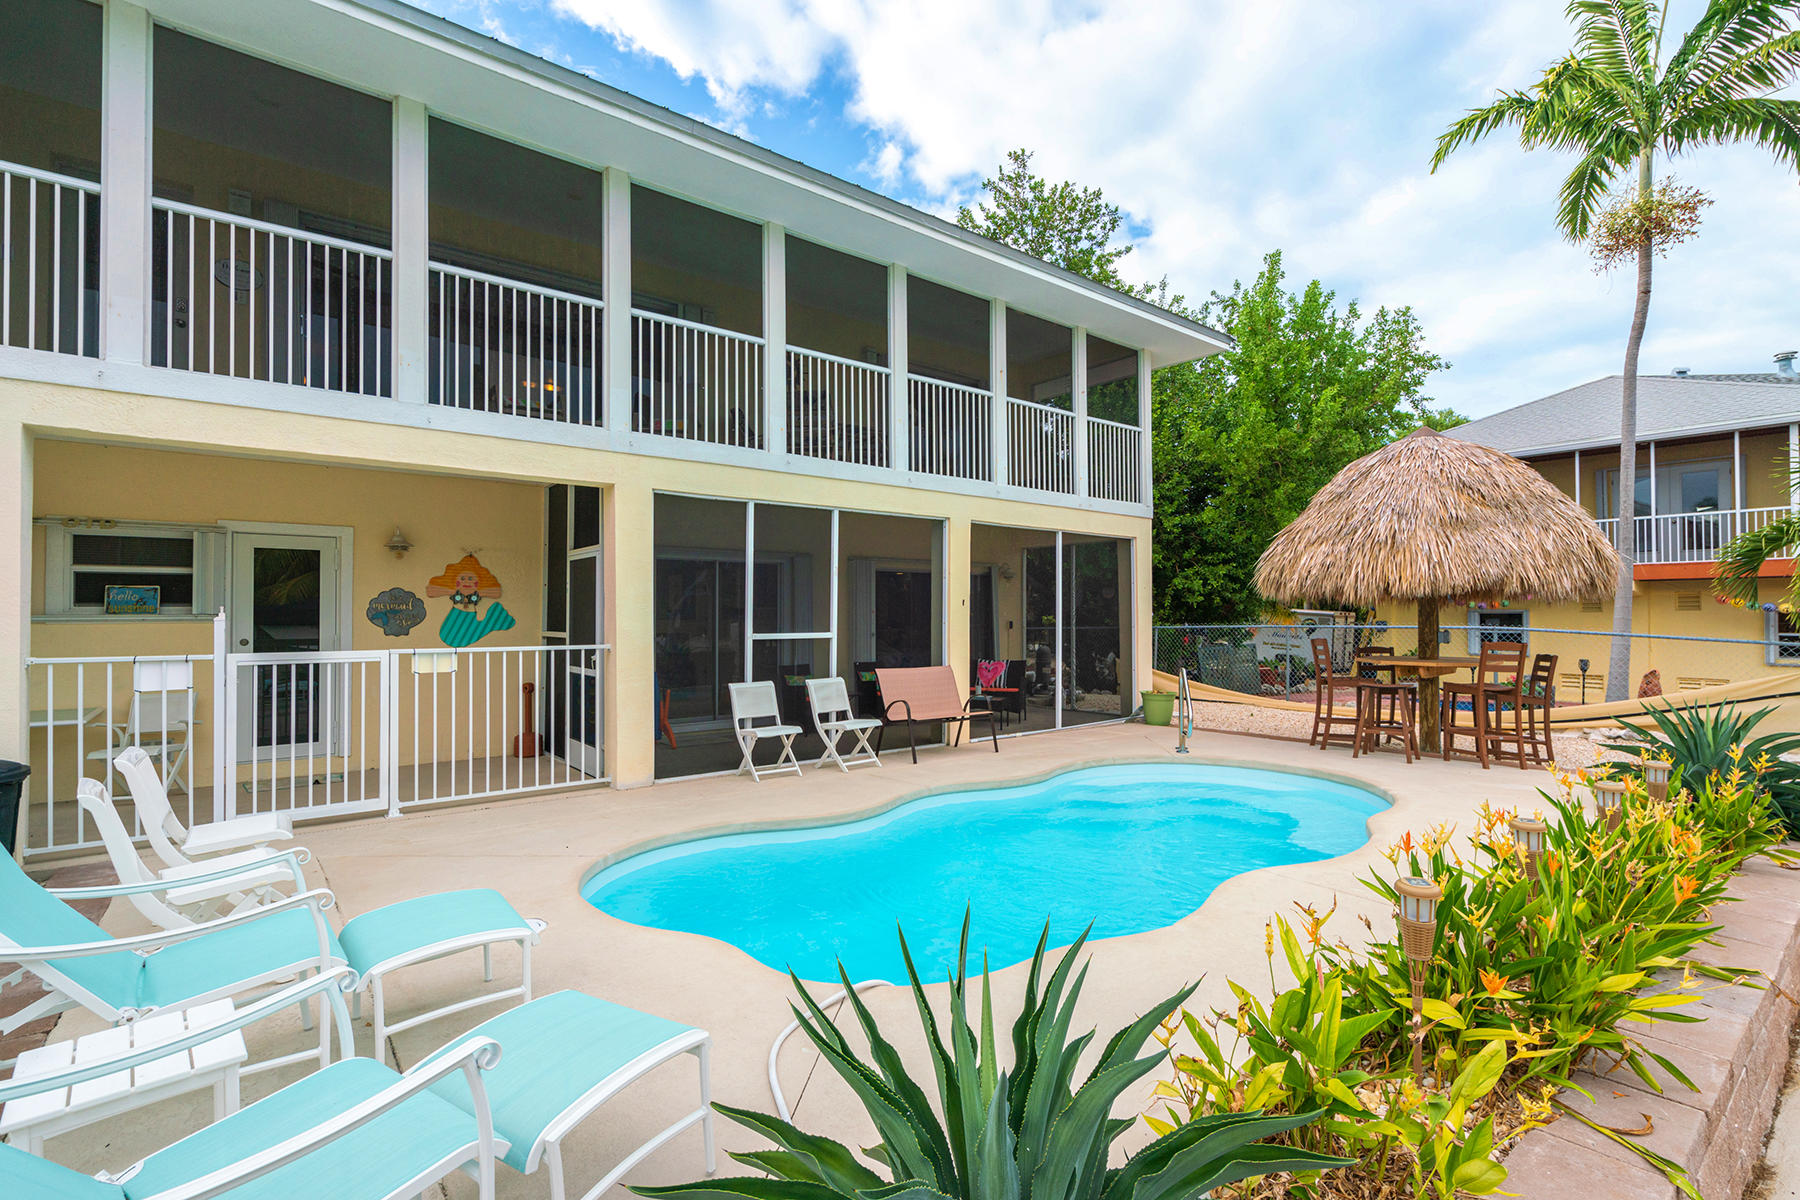 Single Family Homes for Sale at 928 W 75th St Ocean, Marathon, FL 928 W 75th St Ocean Marathon, Florida 33050 United States